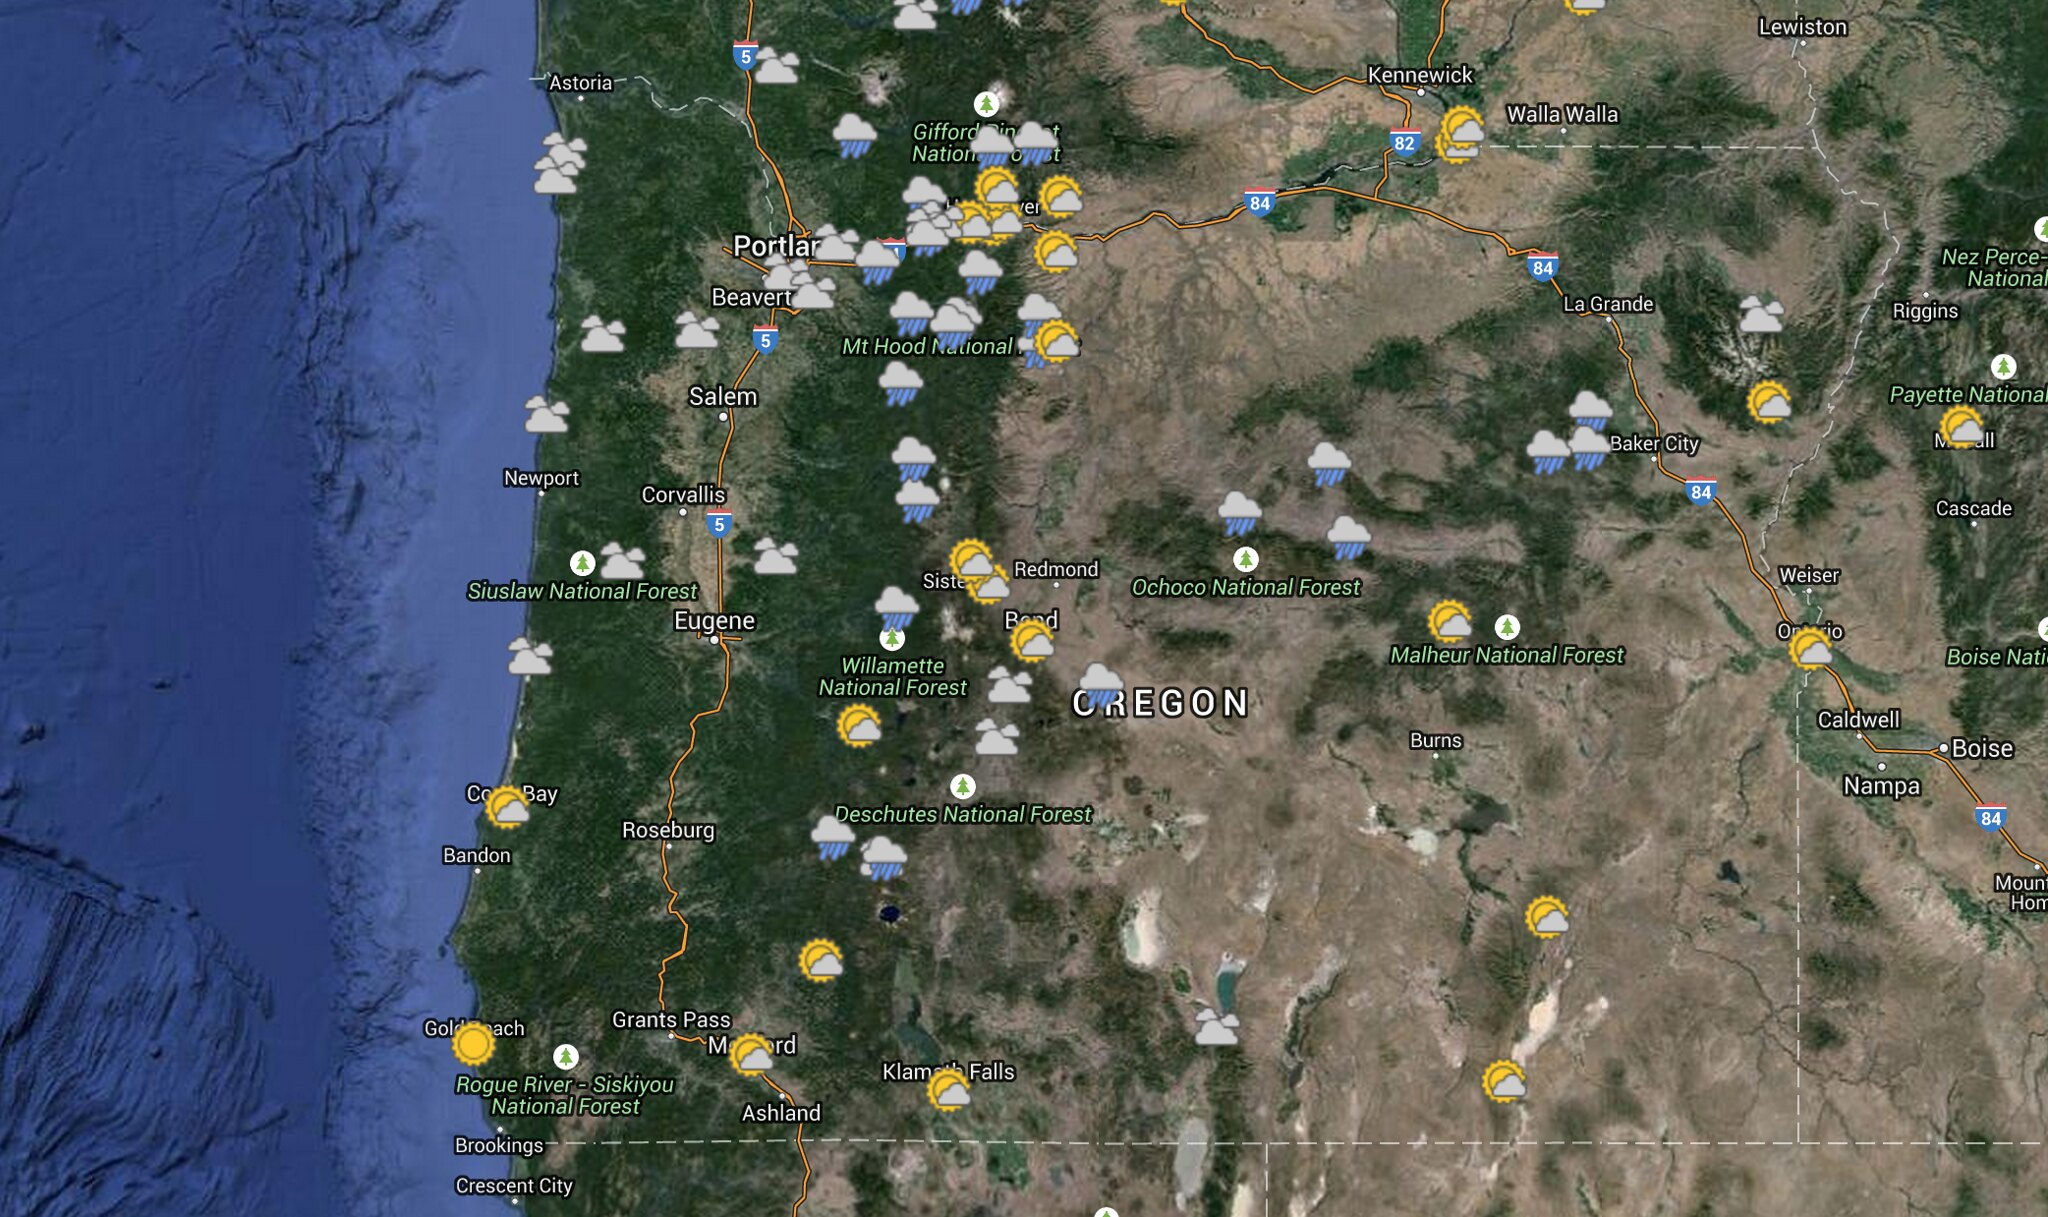 Saturday, May 23 Weather Map: Mostly Rain and Part Sun   Oregon Hikers